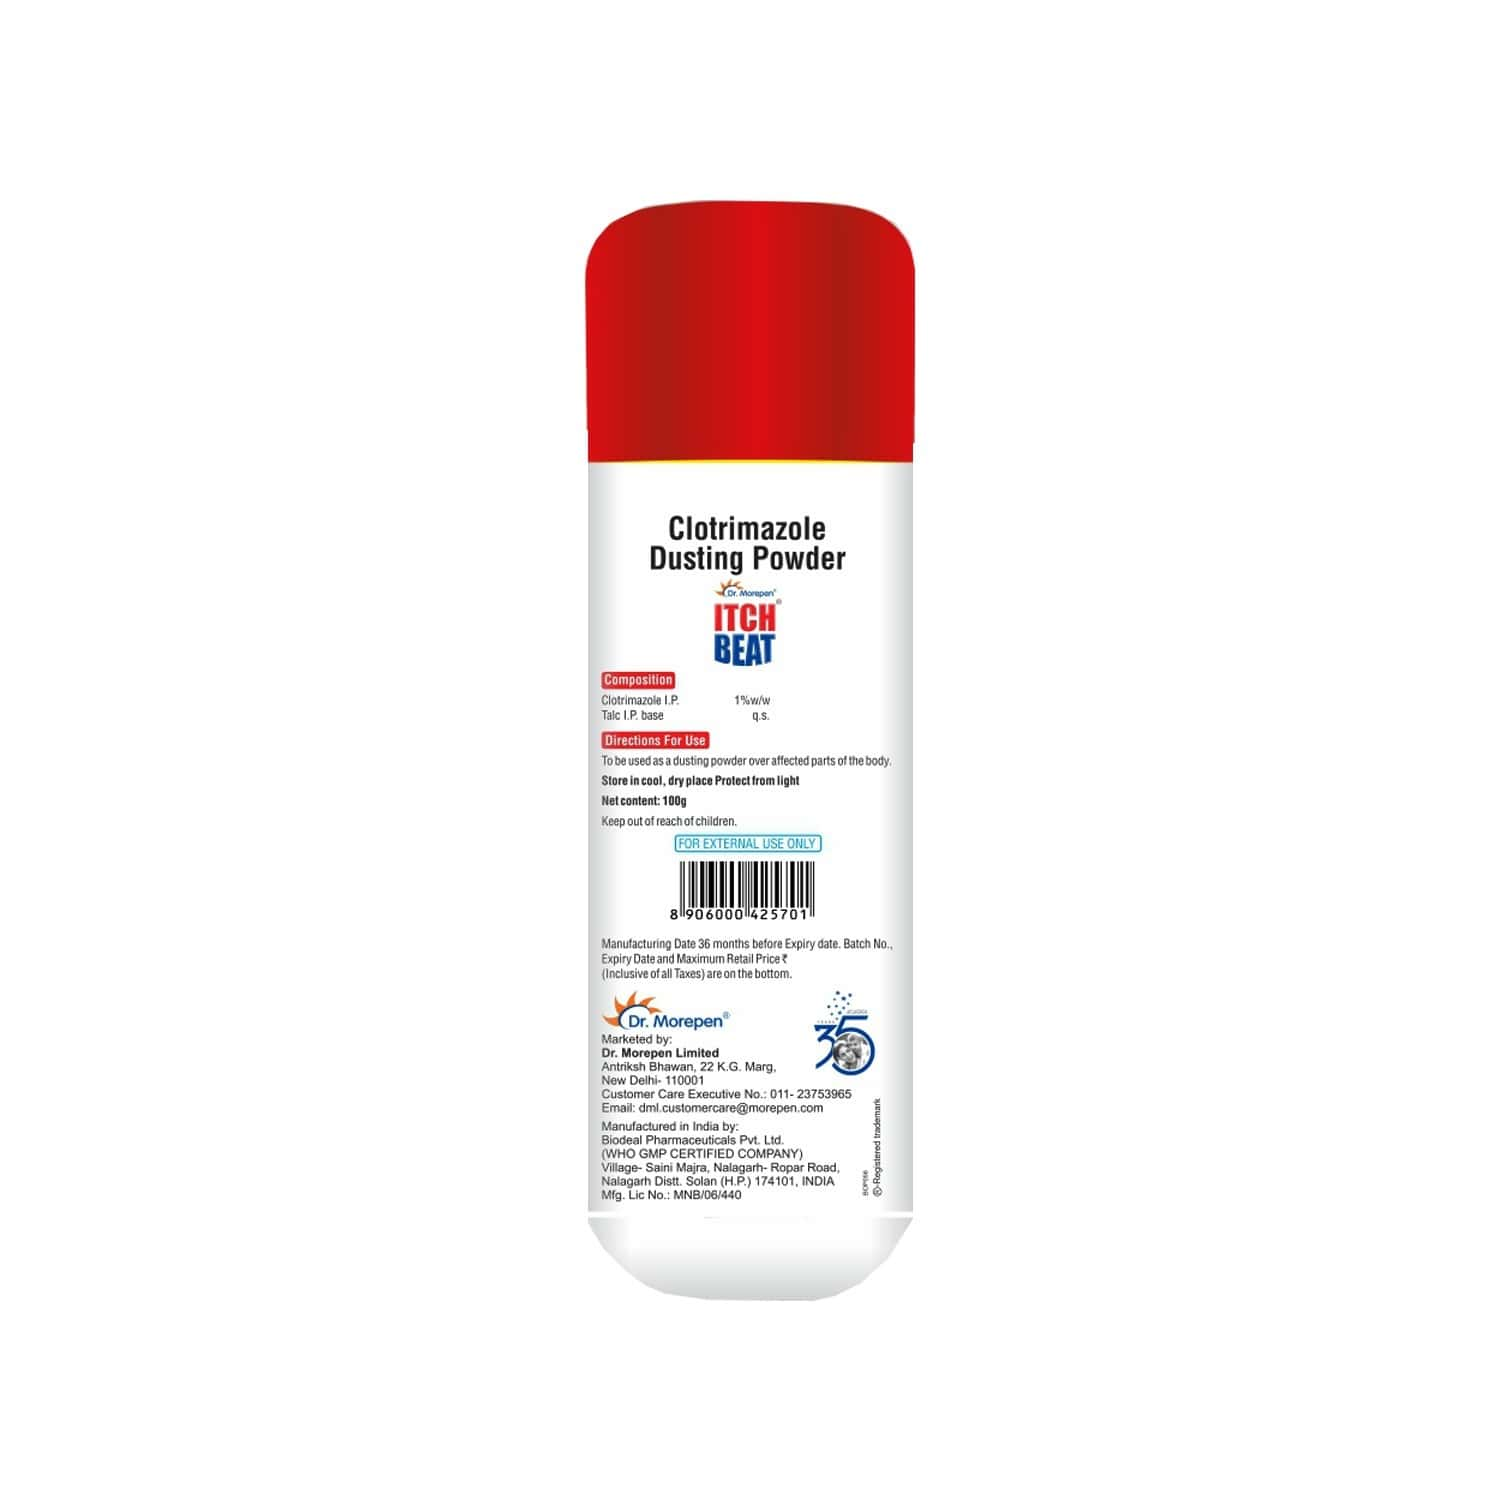 Dr. Morepen Itch Beat Antifungal Dusting Powder